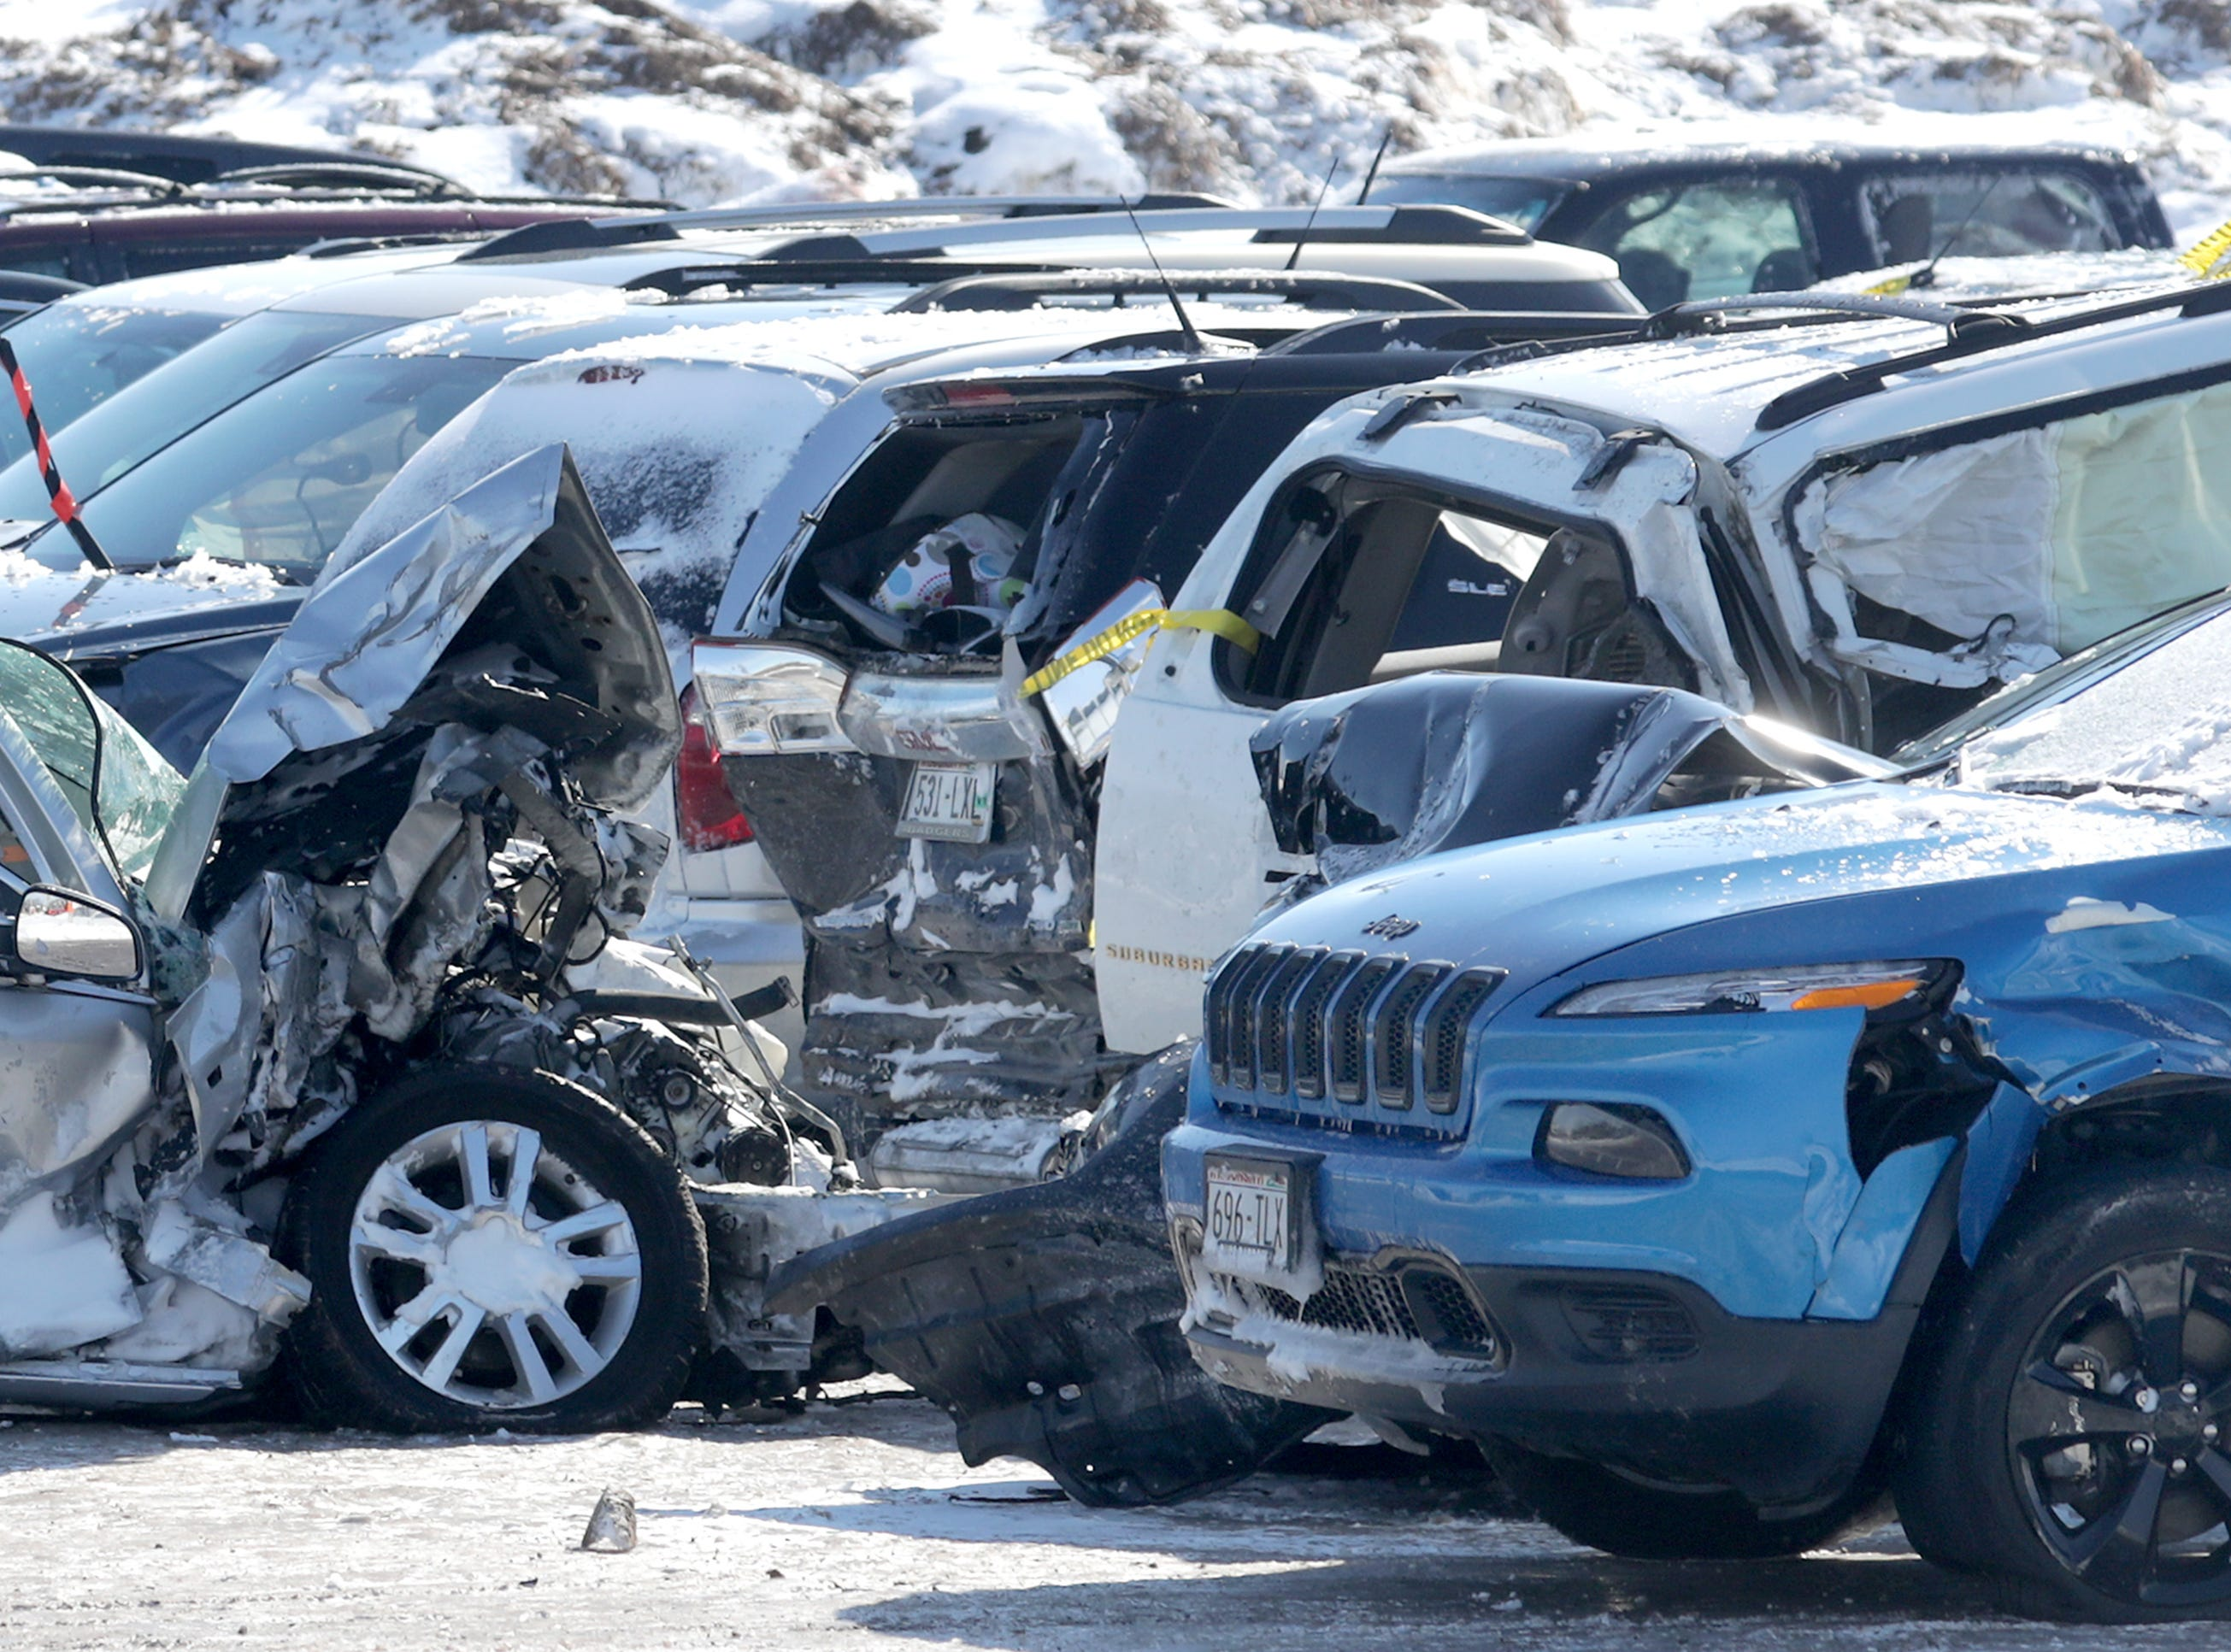 "Vehicles are stored in a lot at the Neenah city garage on Monday, February 25, 2019, in Neenah Wis. The vehicles were towed to the lot aftrer one person was killed and dozens of drivers were stranded following a pileup of more than 100 cars on Interstate 41 on Sunday, February 24, 2019. Whiteout conditions caused the ""chain reaction crash"" at 11:10.